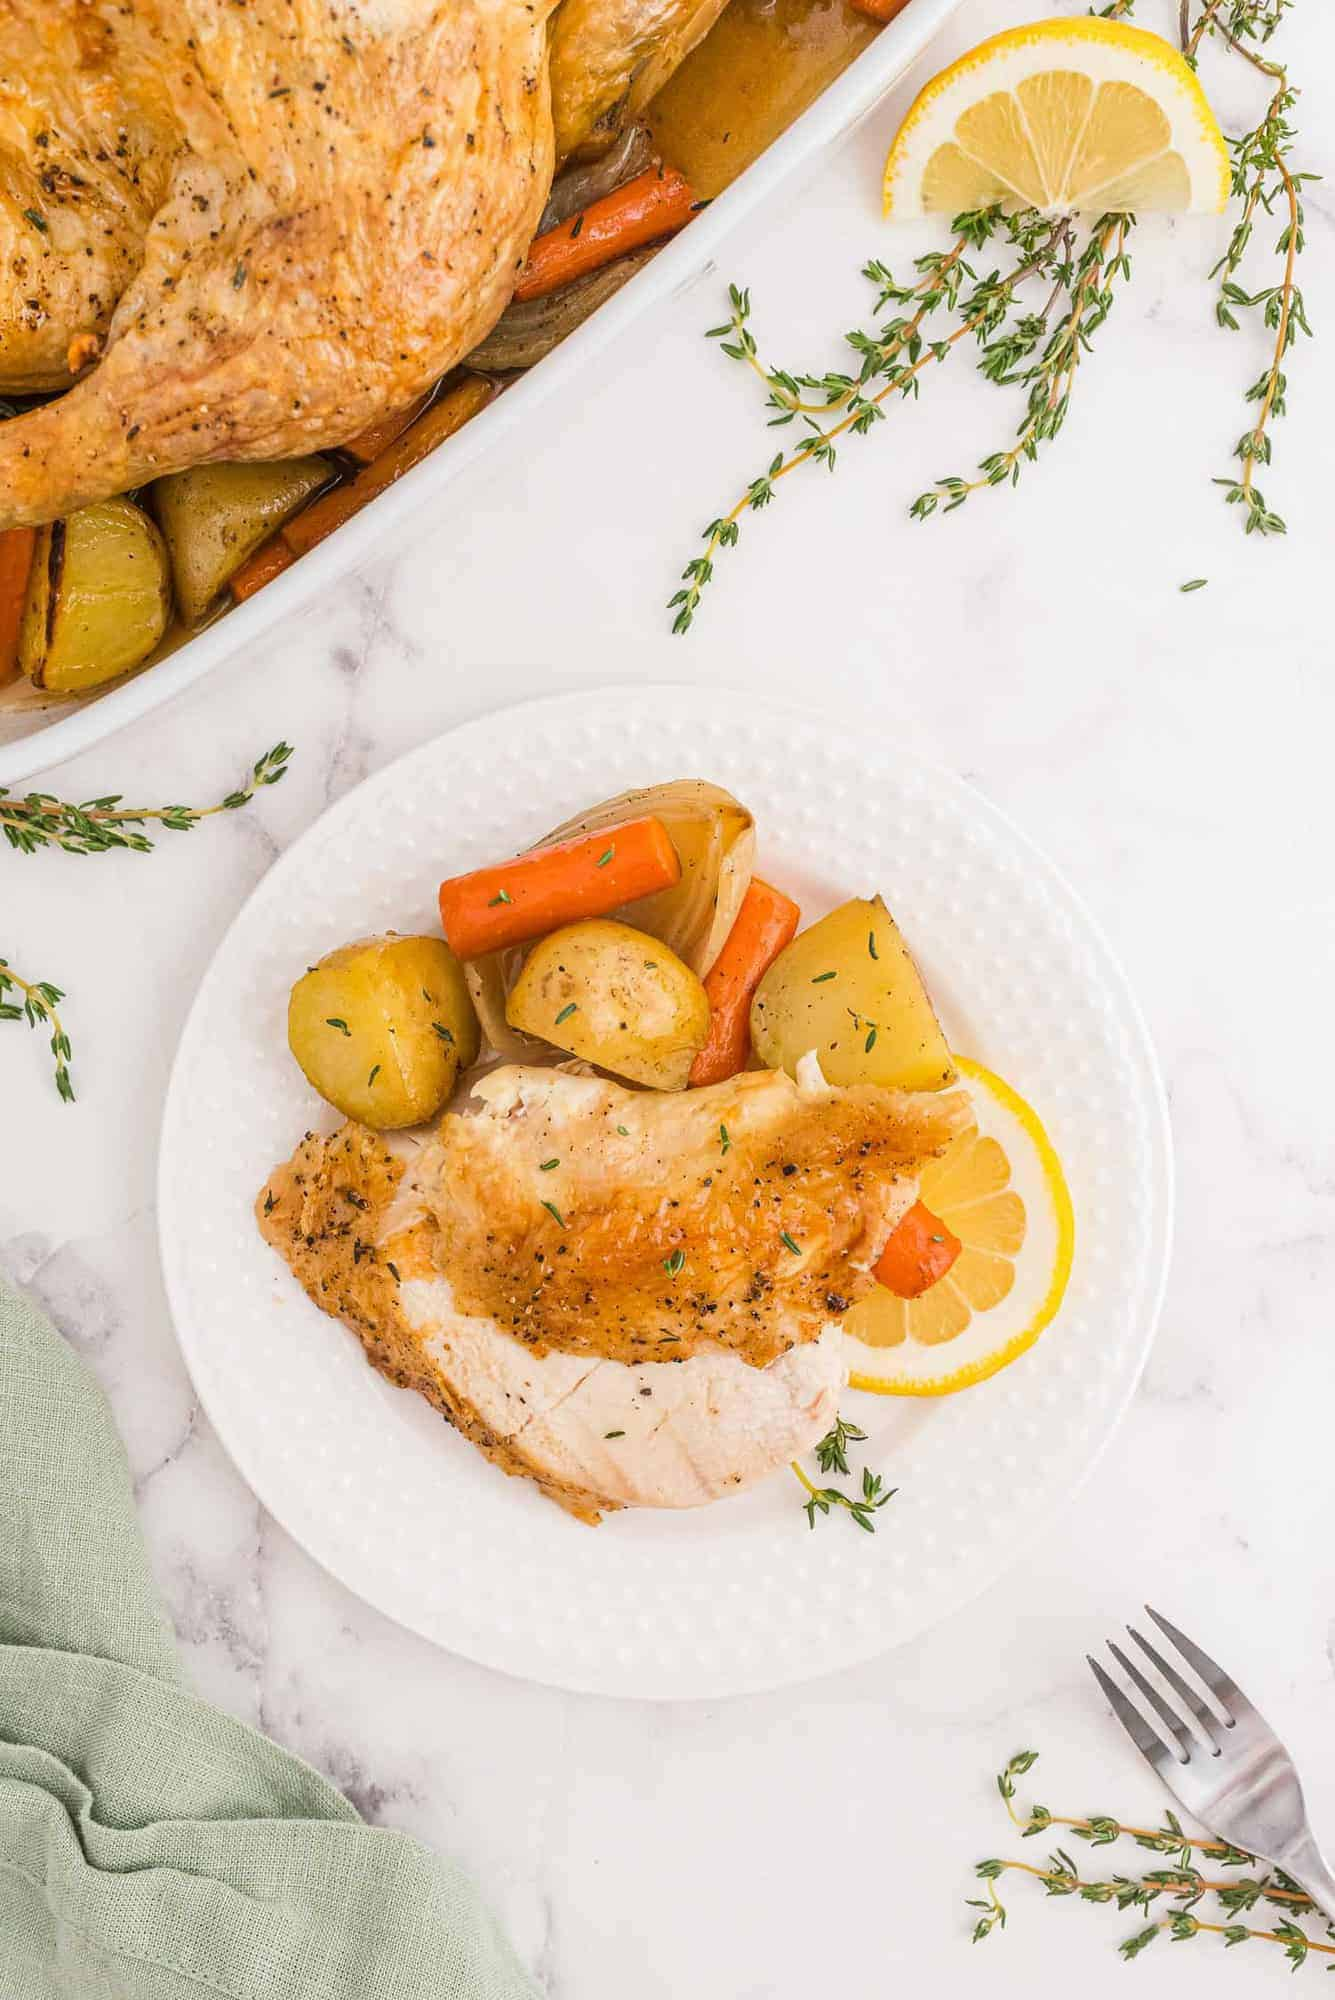 Carved chicken on a plate with vegetables and potatoes.